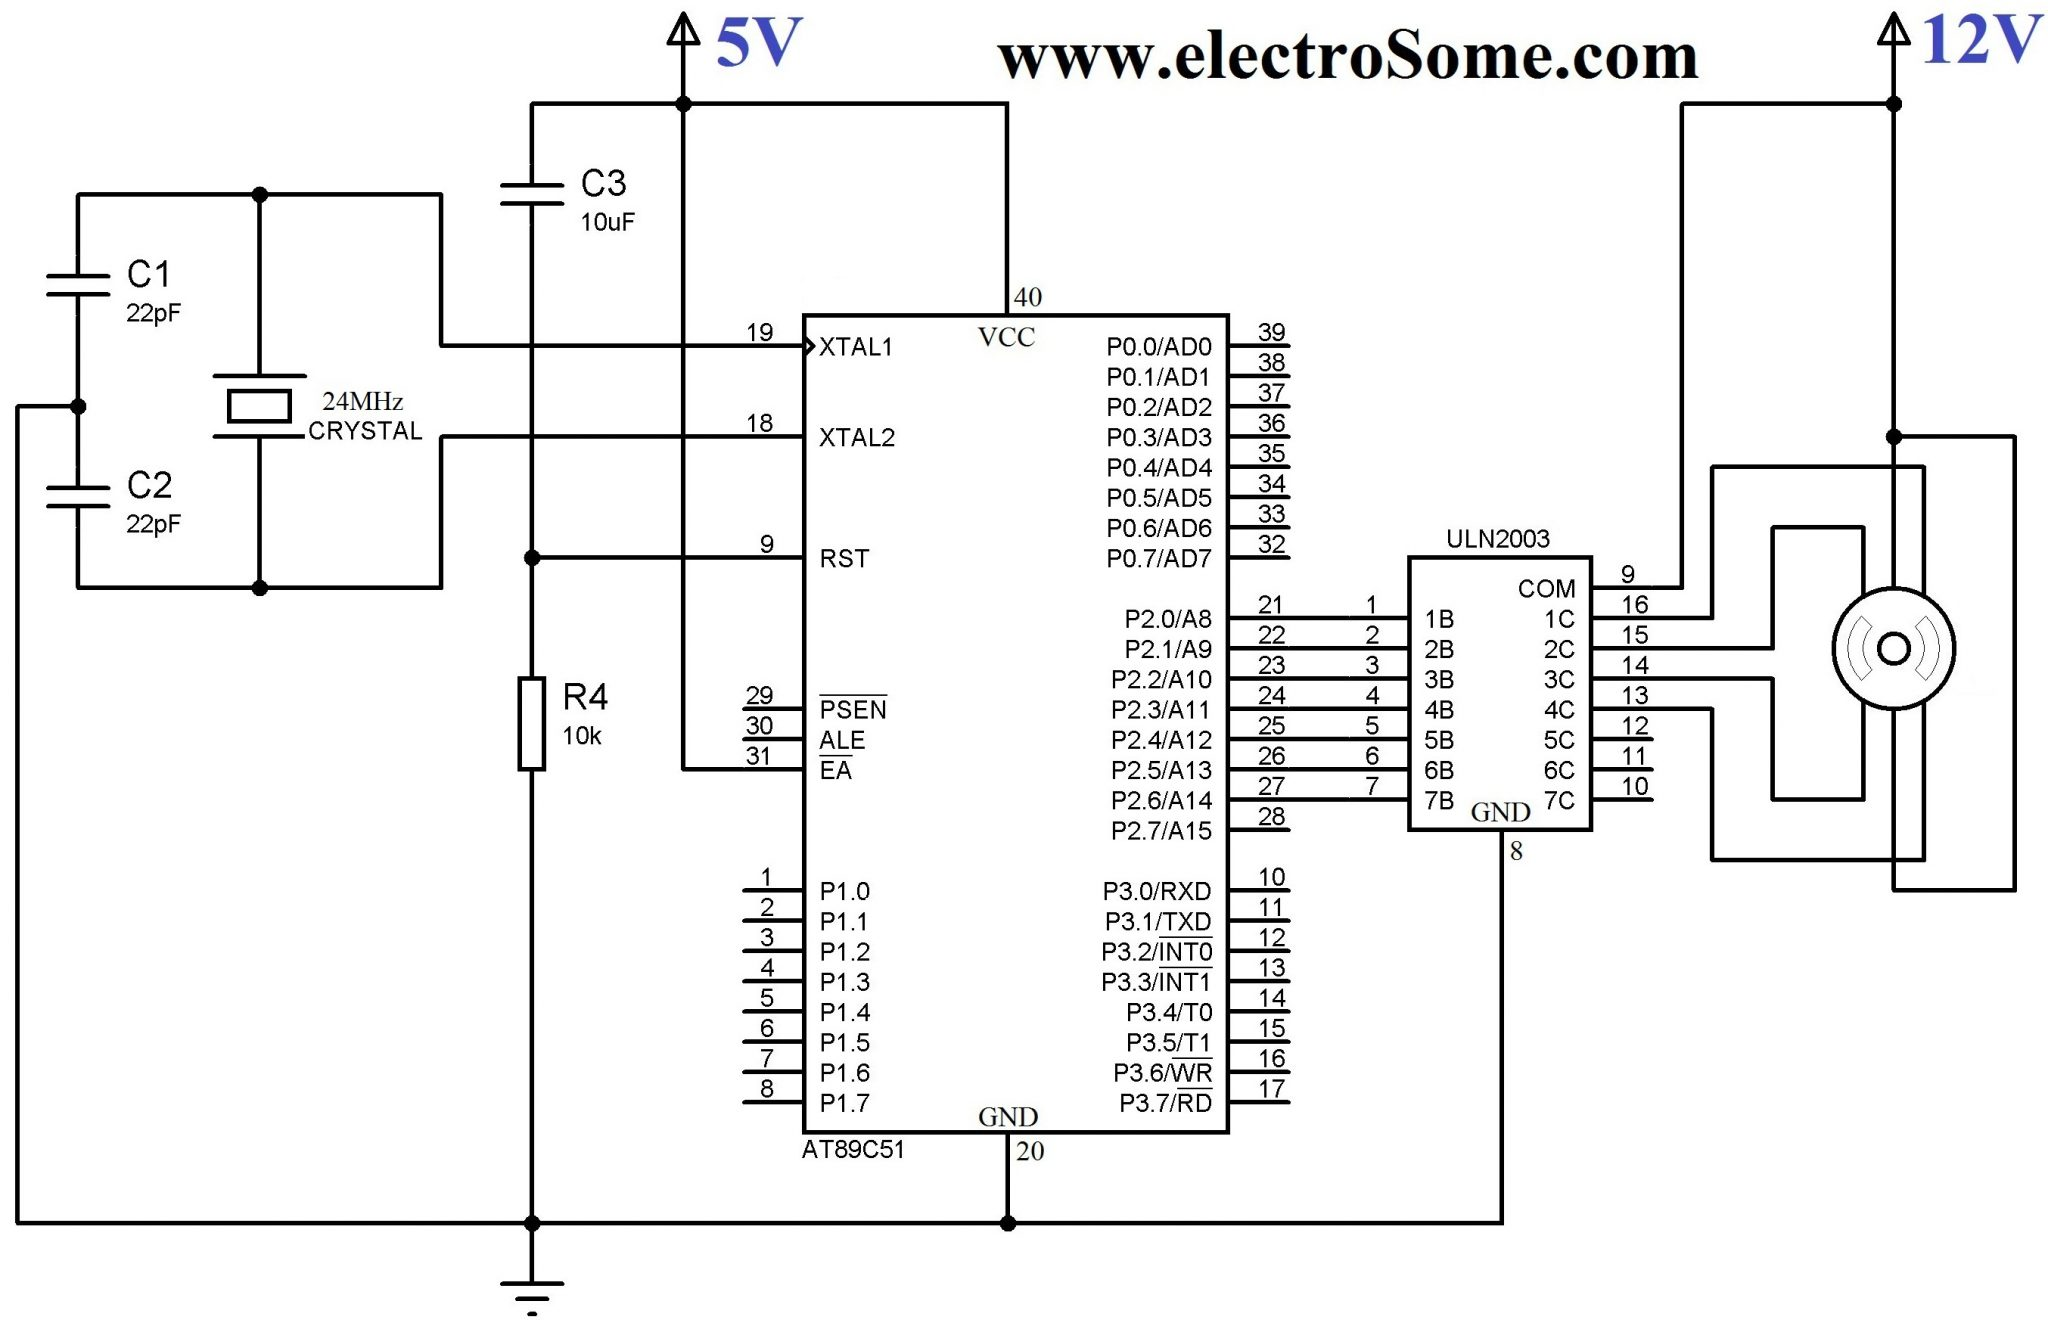 long s stepper motor wiring diagram how to make an energy level library interfacing unipolar with 8051 using uln2003